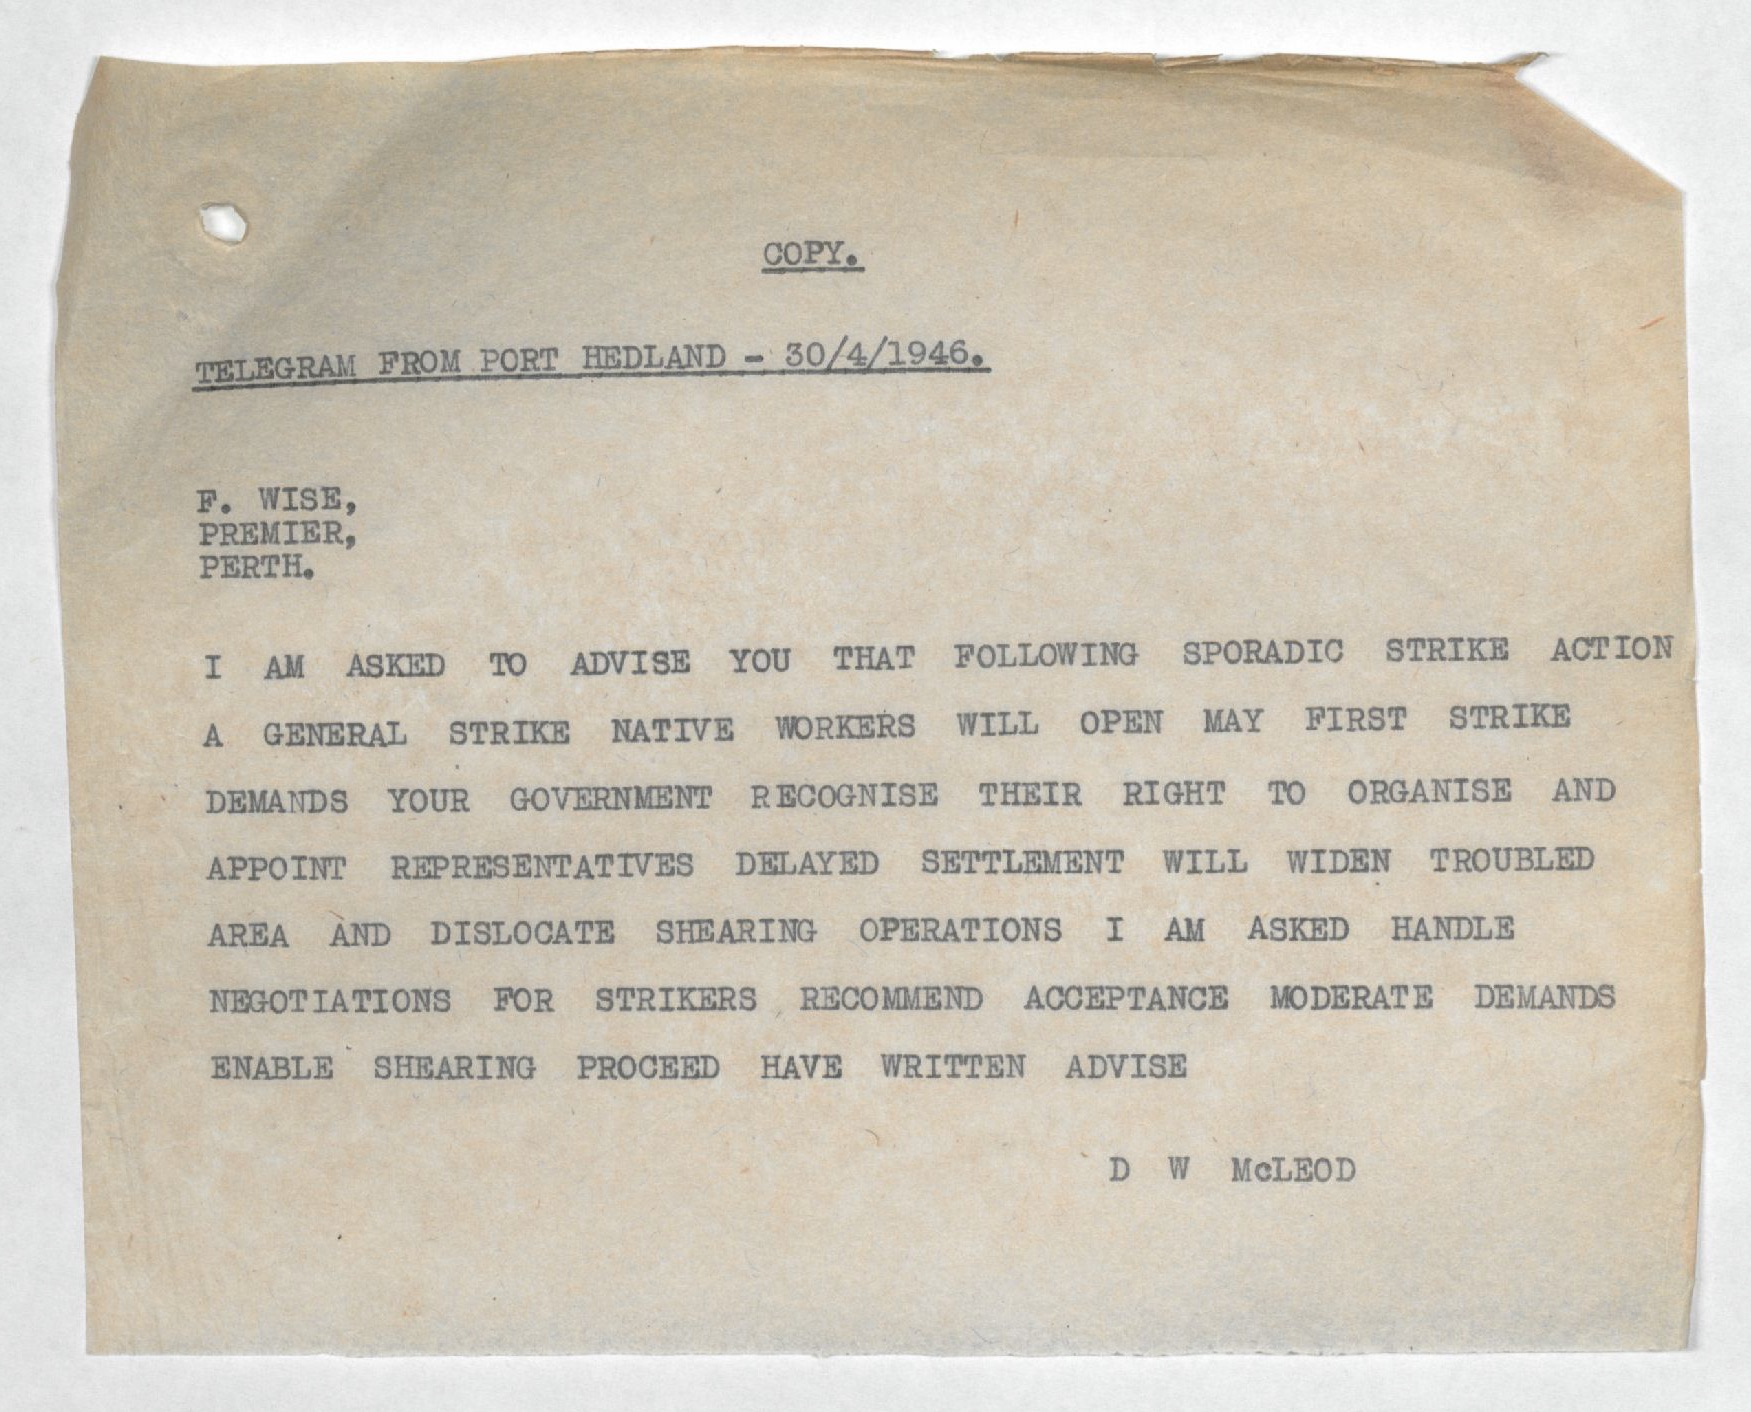 Don McLeod to Premier Frank Wise, telegram, 30 April 1946.